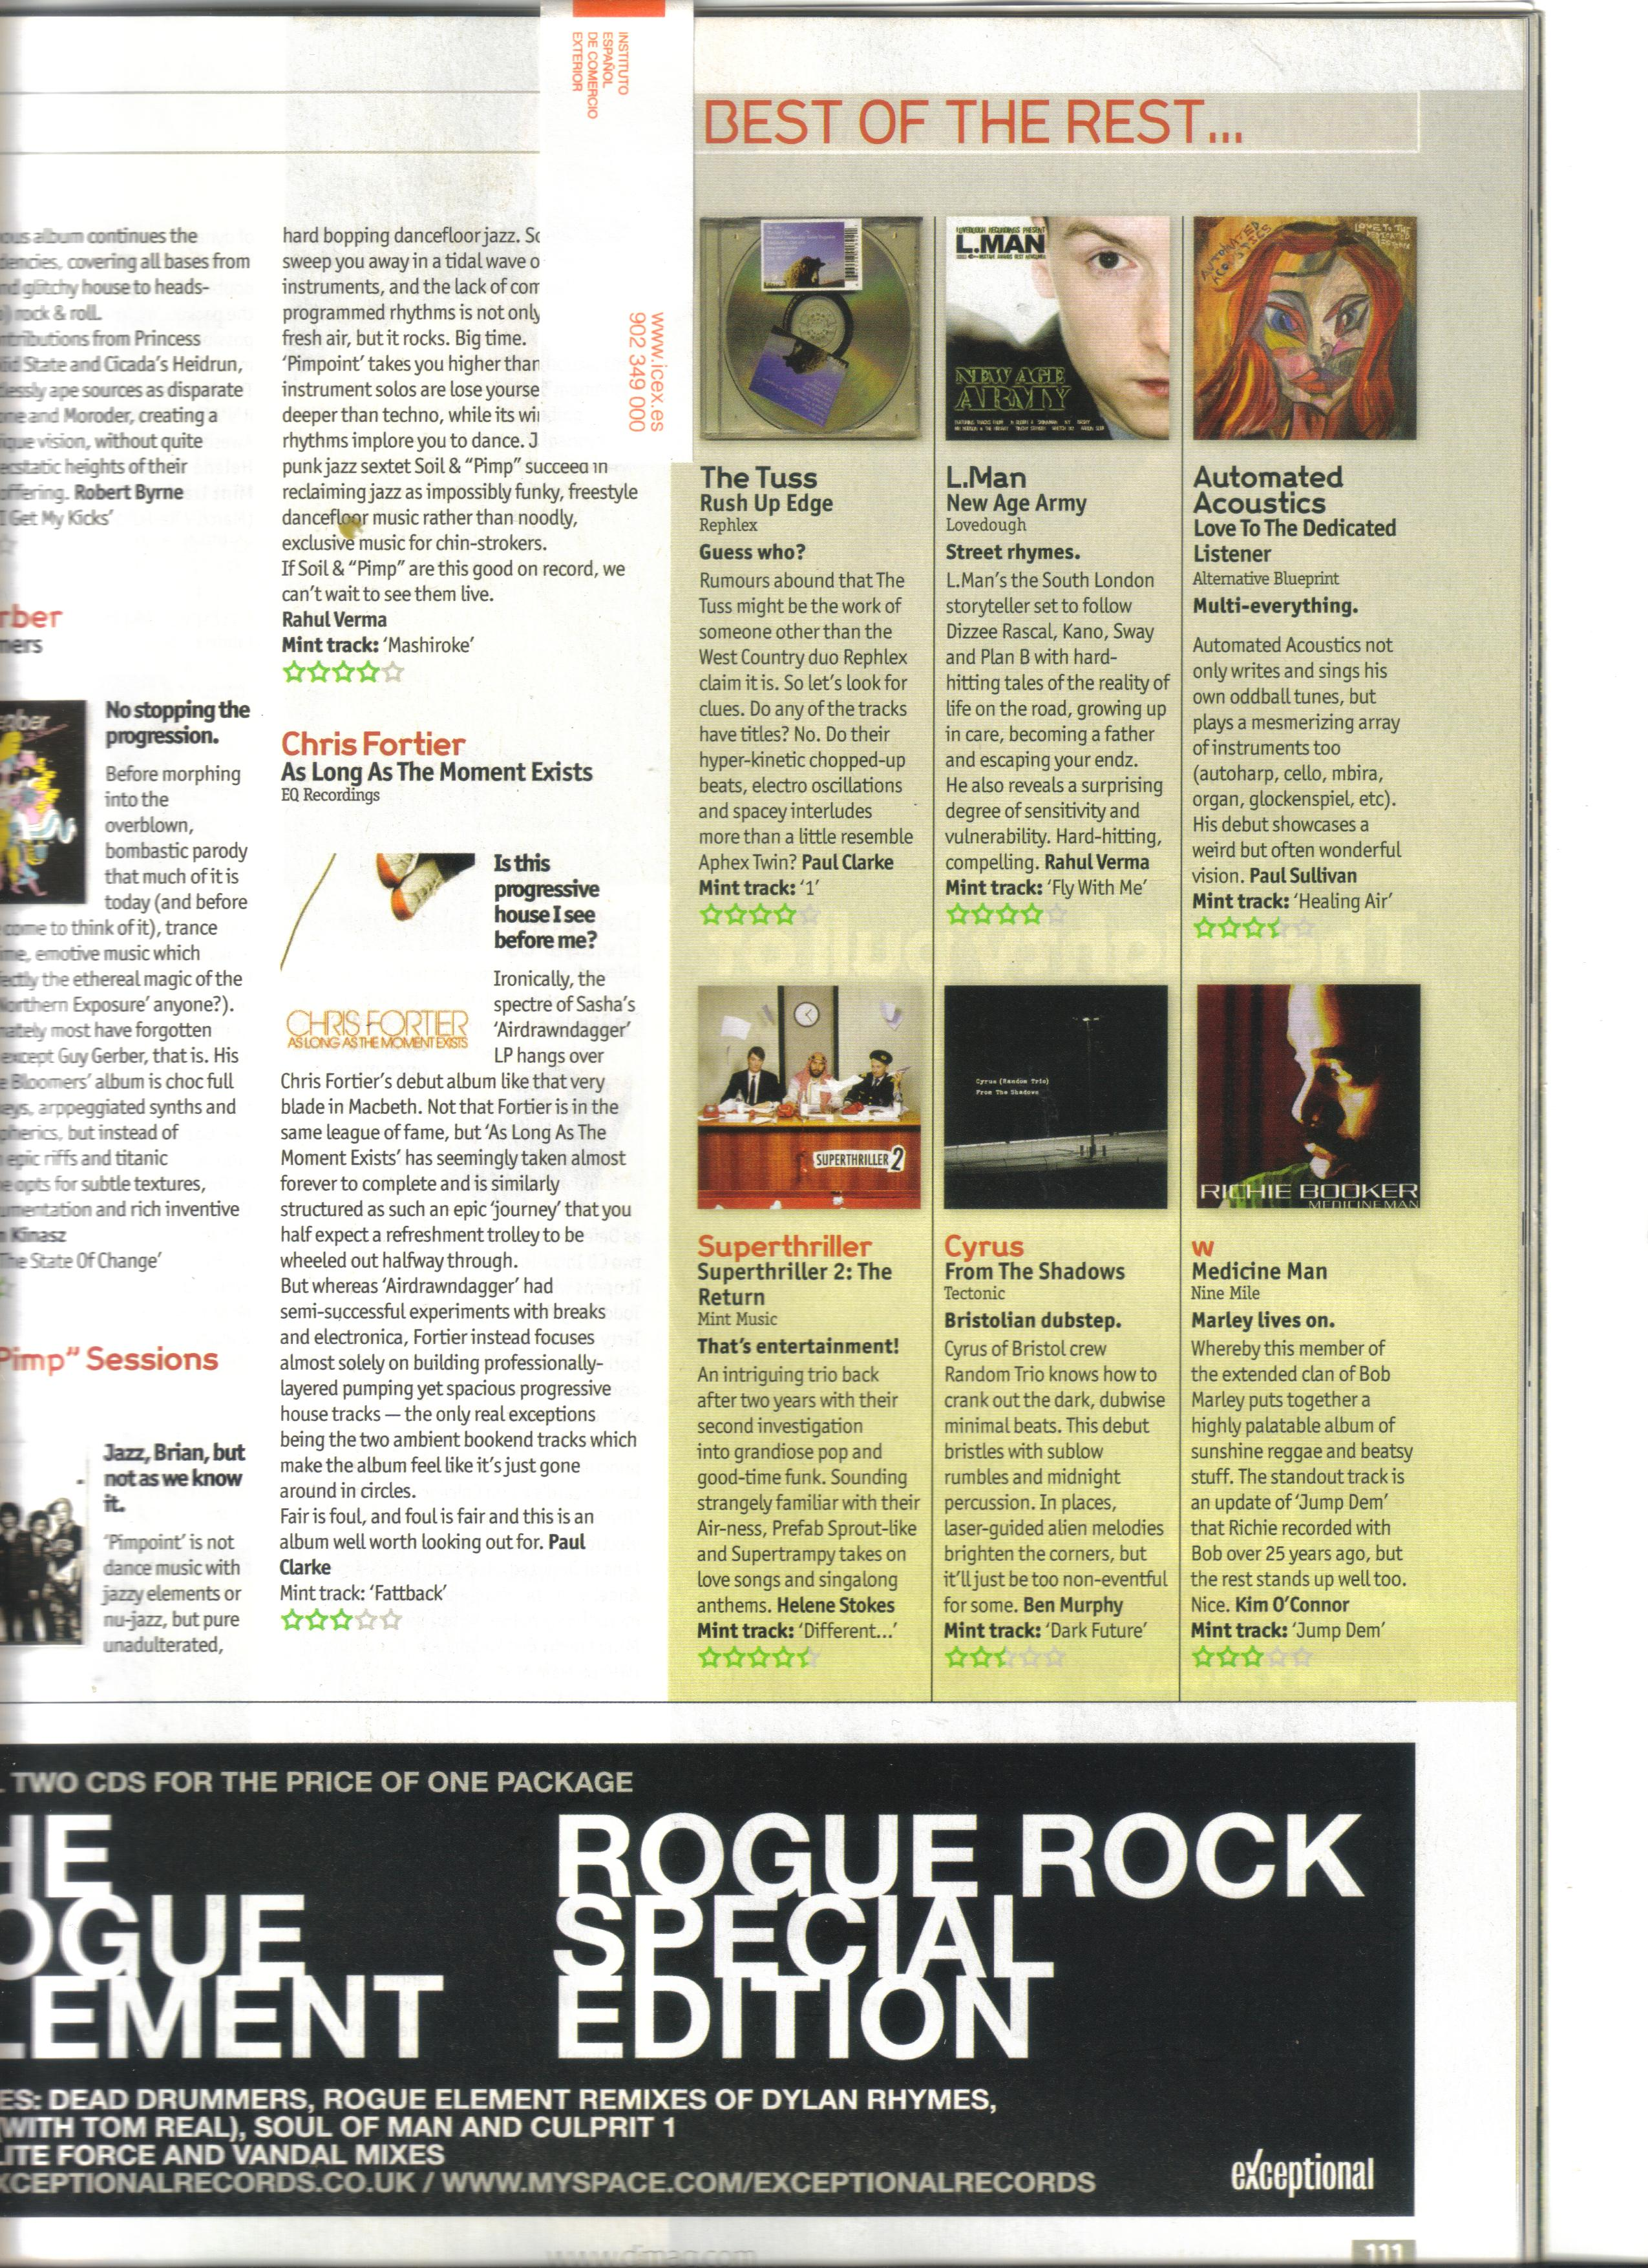 Reviews for love to the dedicated listener album automated acoustics dj mag review review of the album love to the dedicated listener by automated malvernweather Gallery